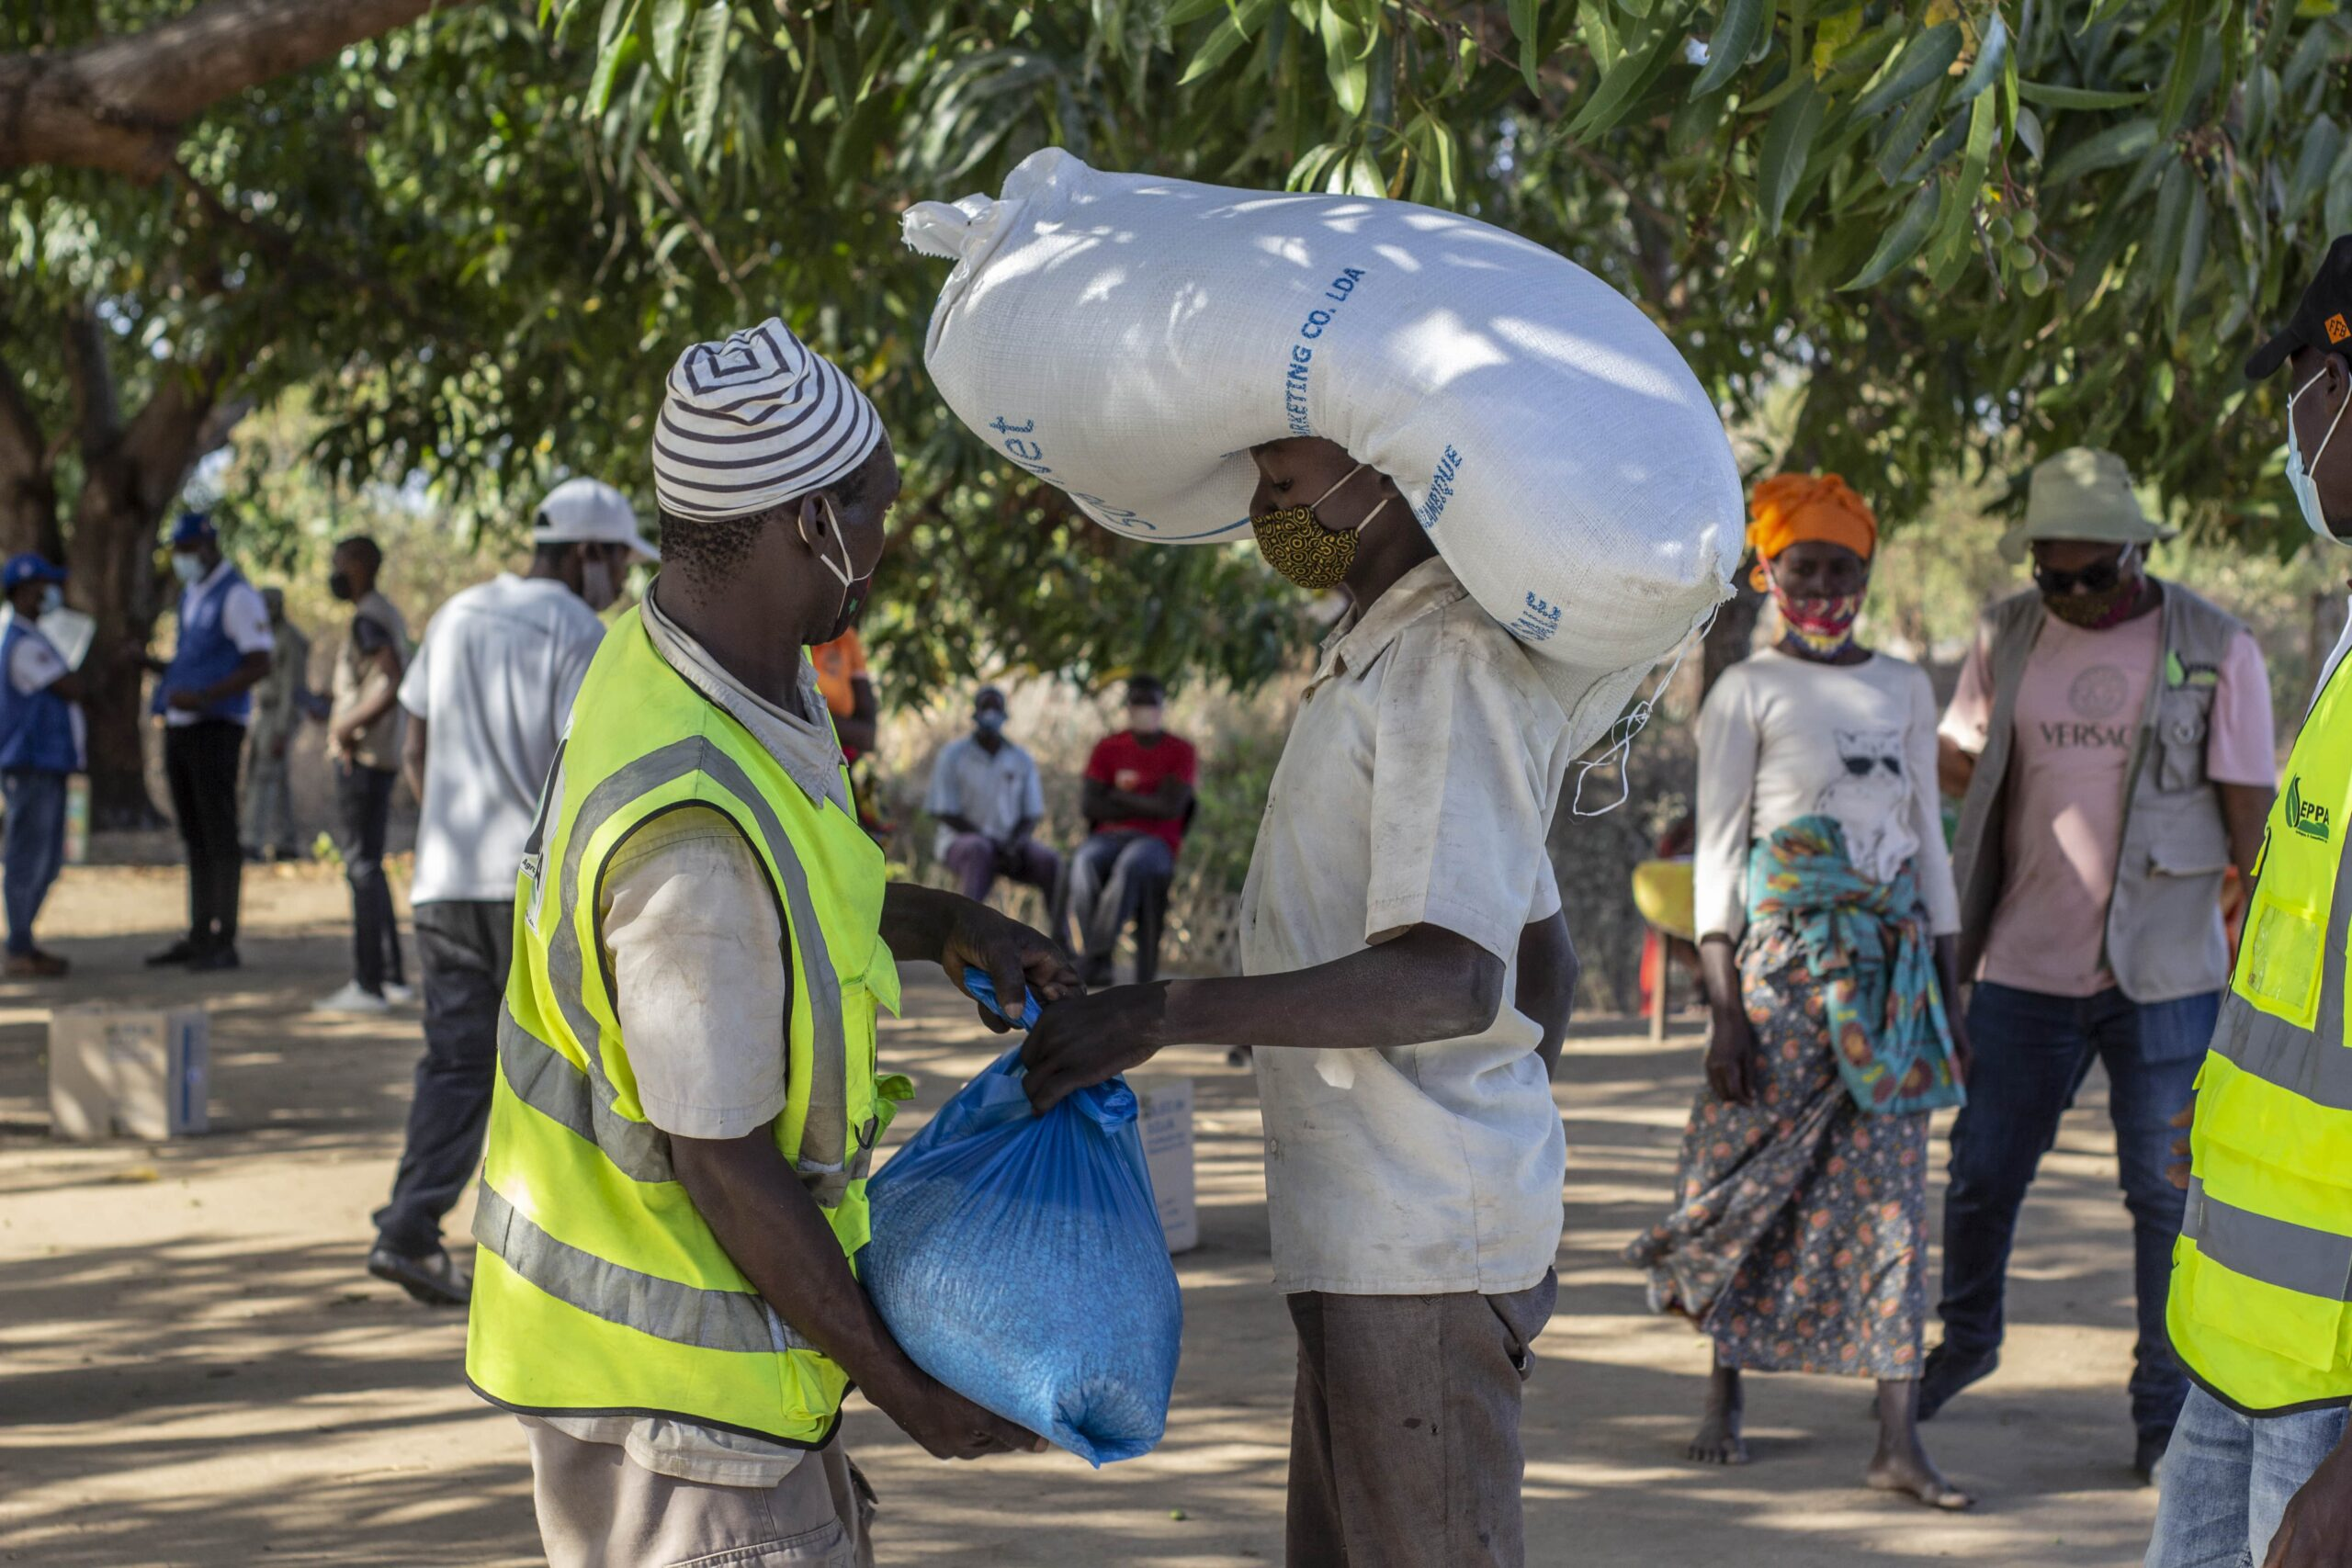 A WFP staff distributing food at a station in Cabo Delgado, Mozambique